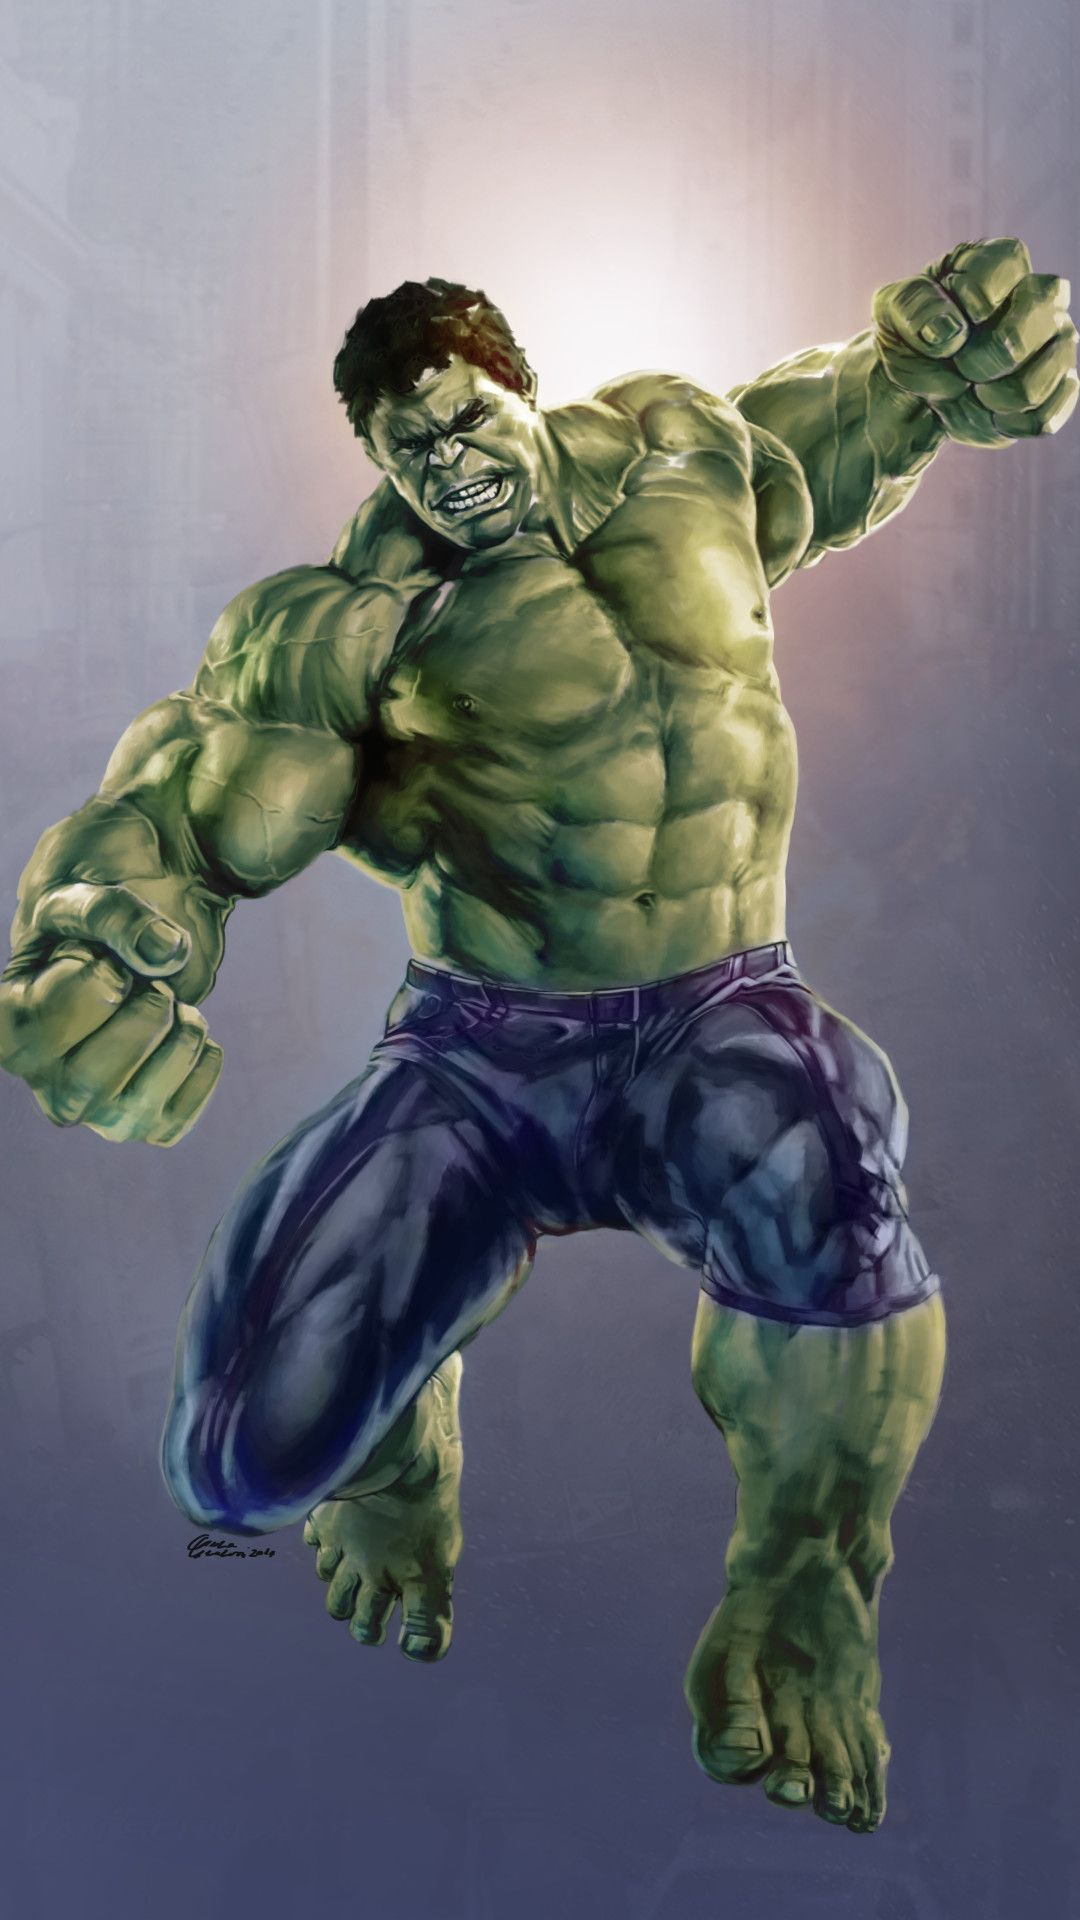 Hulk For Android Wallpapers - Wallpaper Cave